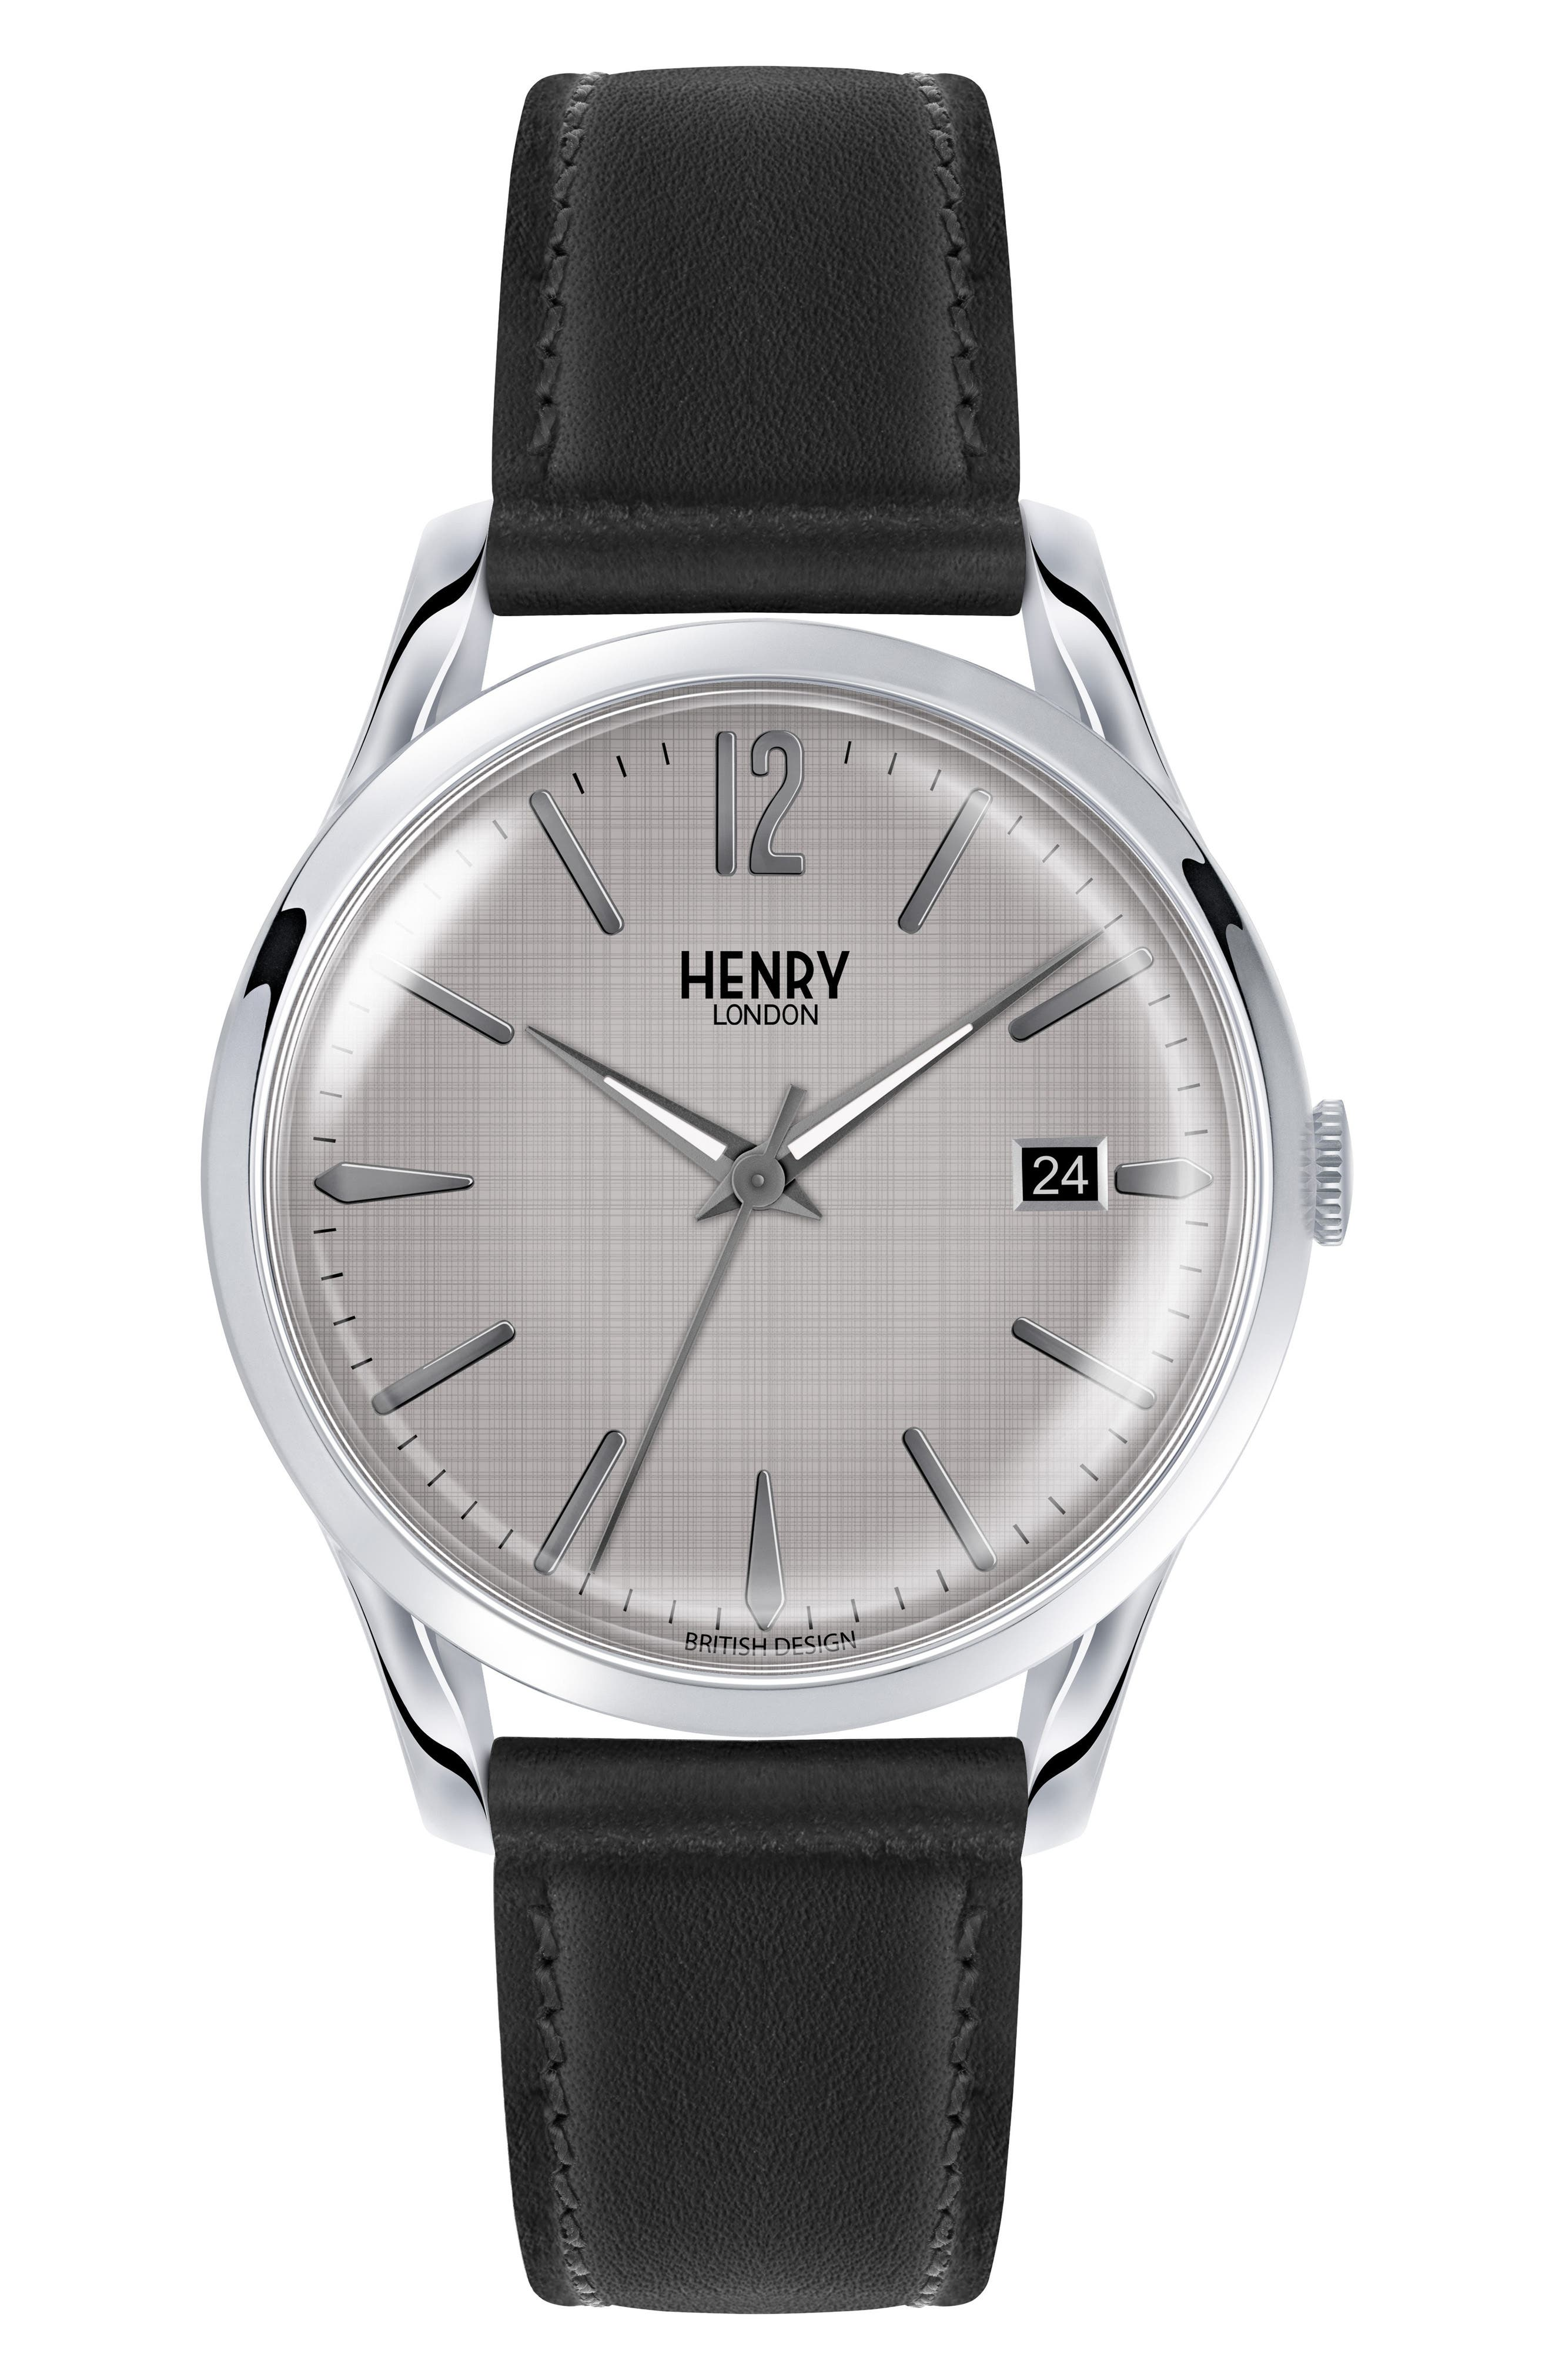 HENRY LONDON Piccadilly Leather Strap Watch, 39Mm in Black/ Grey/ Silver